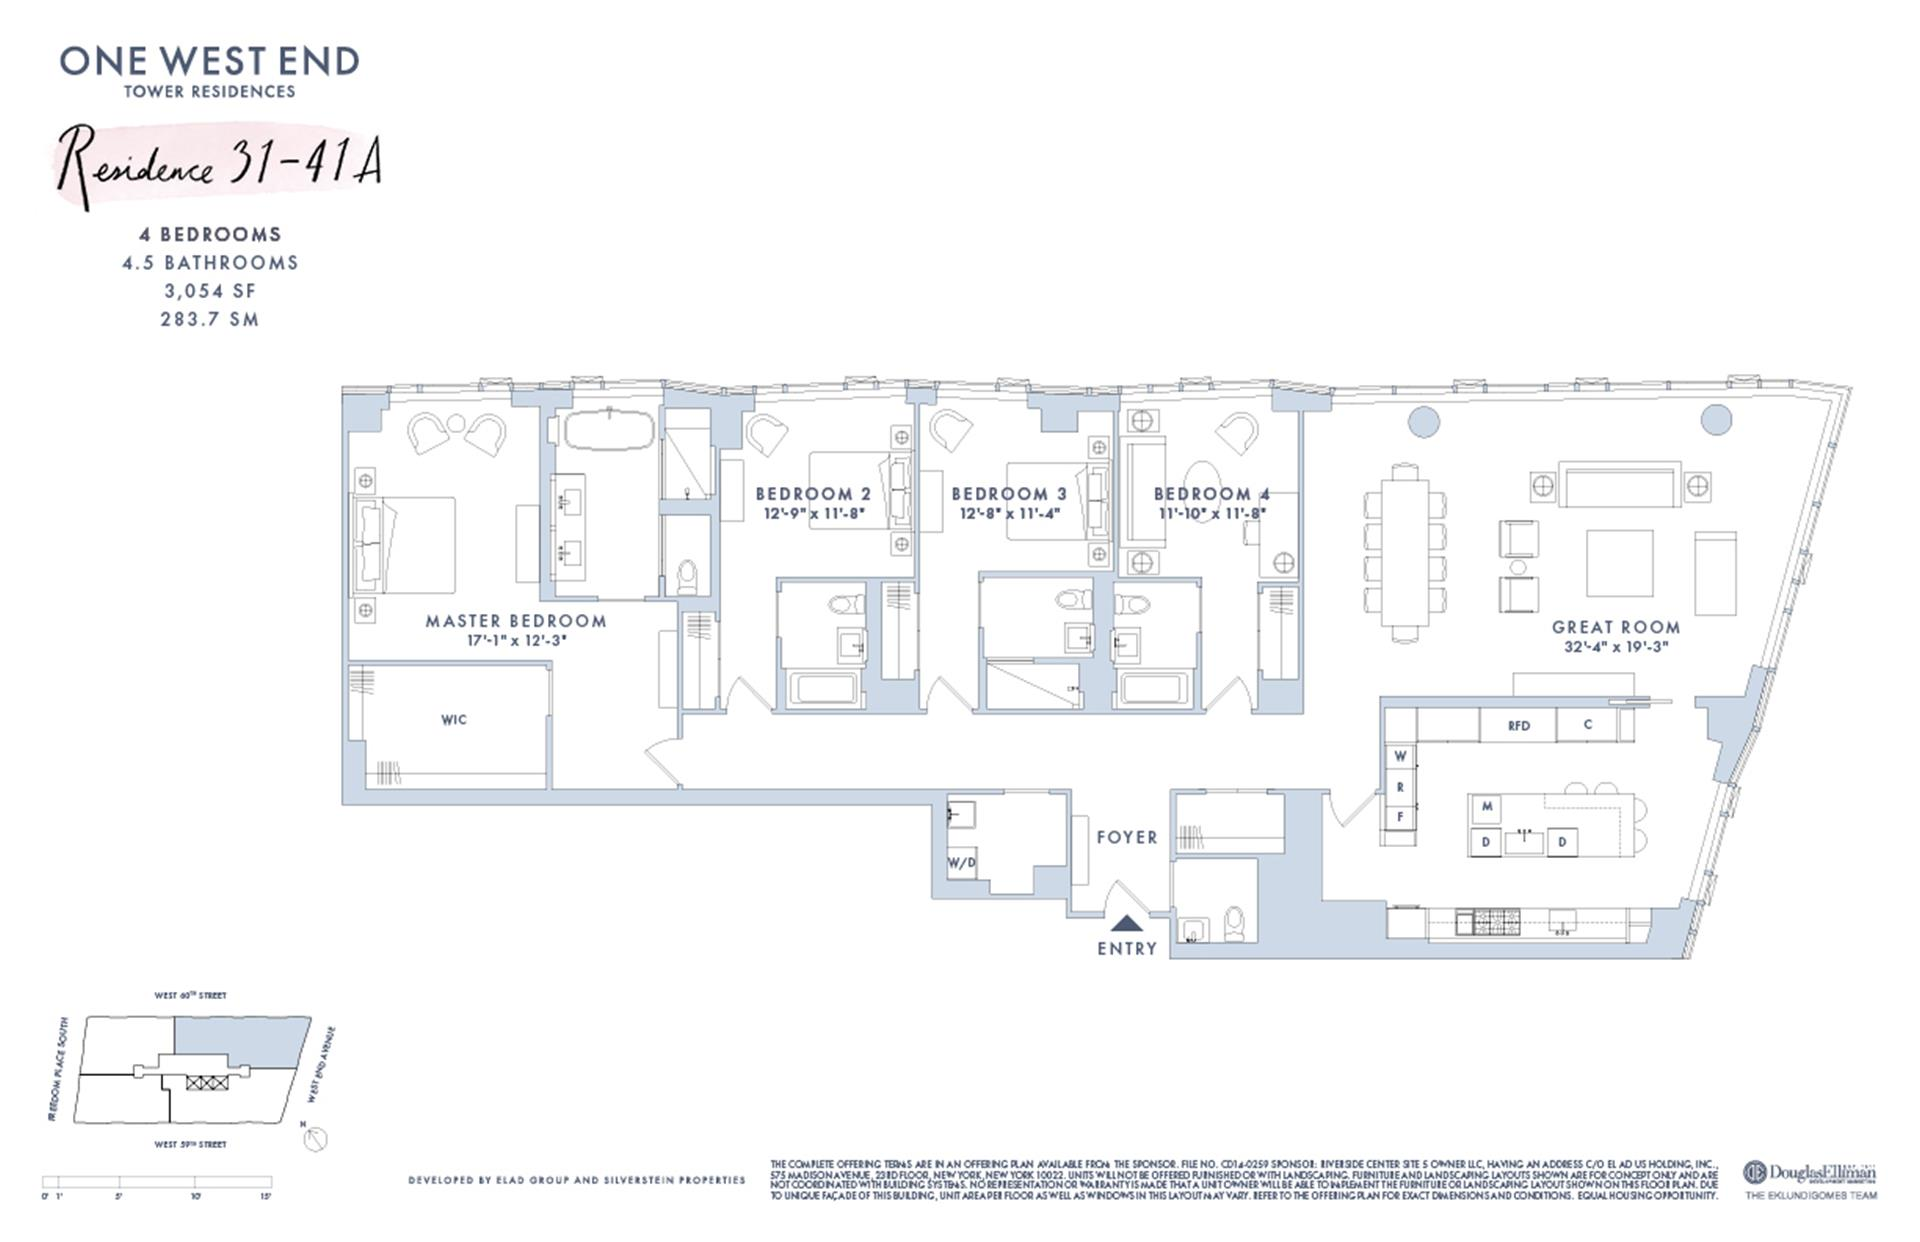 Floor plan of One West End, 1 West End Avenue, 32A - Upper West Side, New York